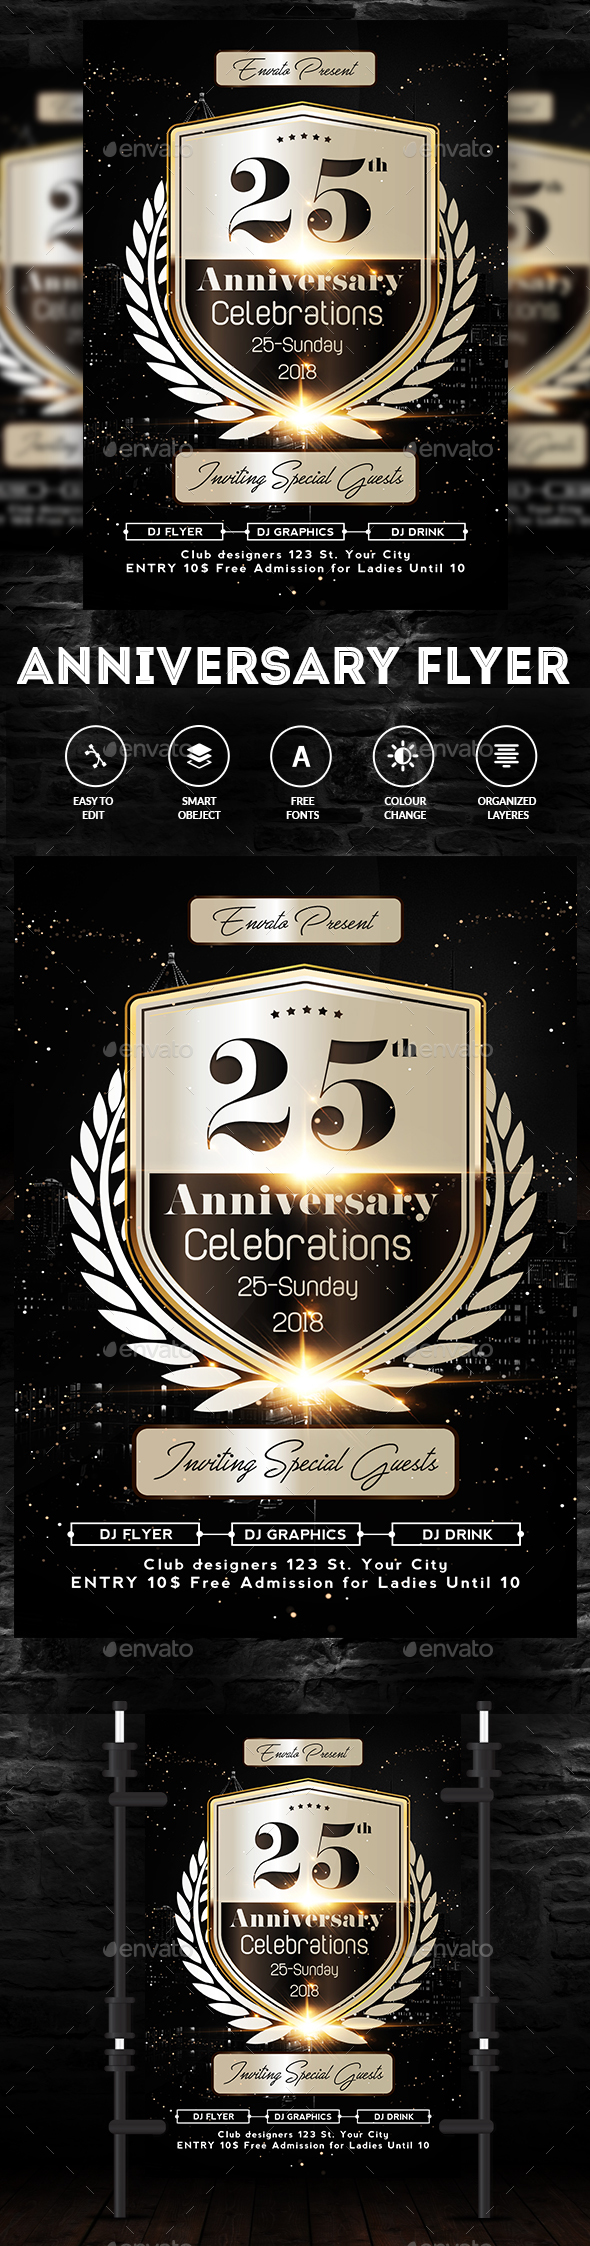 Graphicriver Anniversary Flyer 19657327